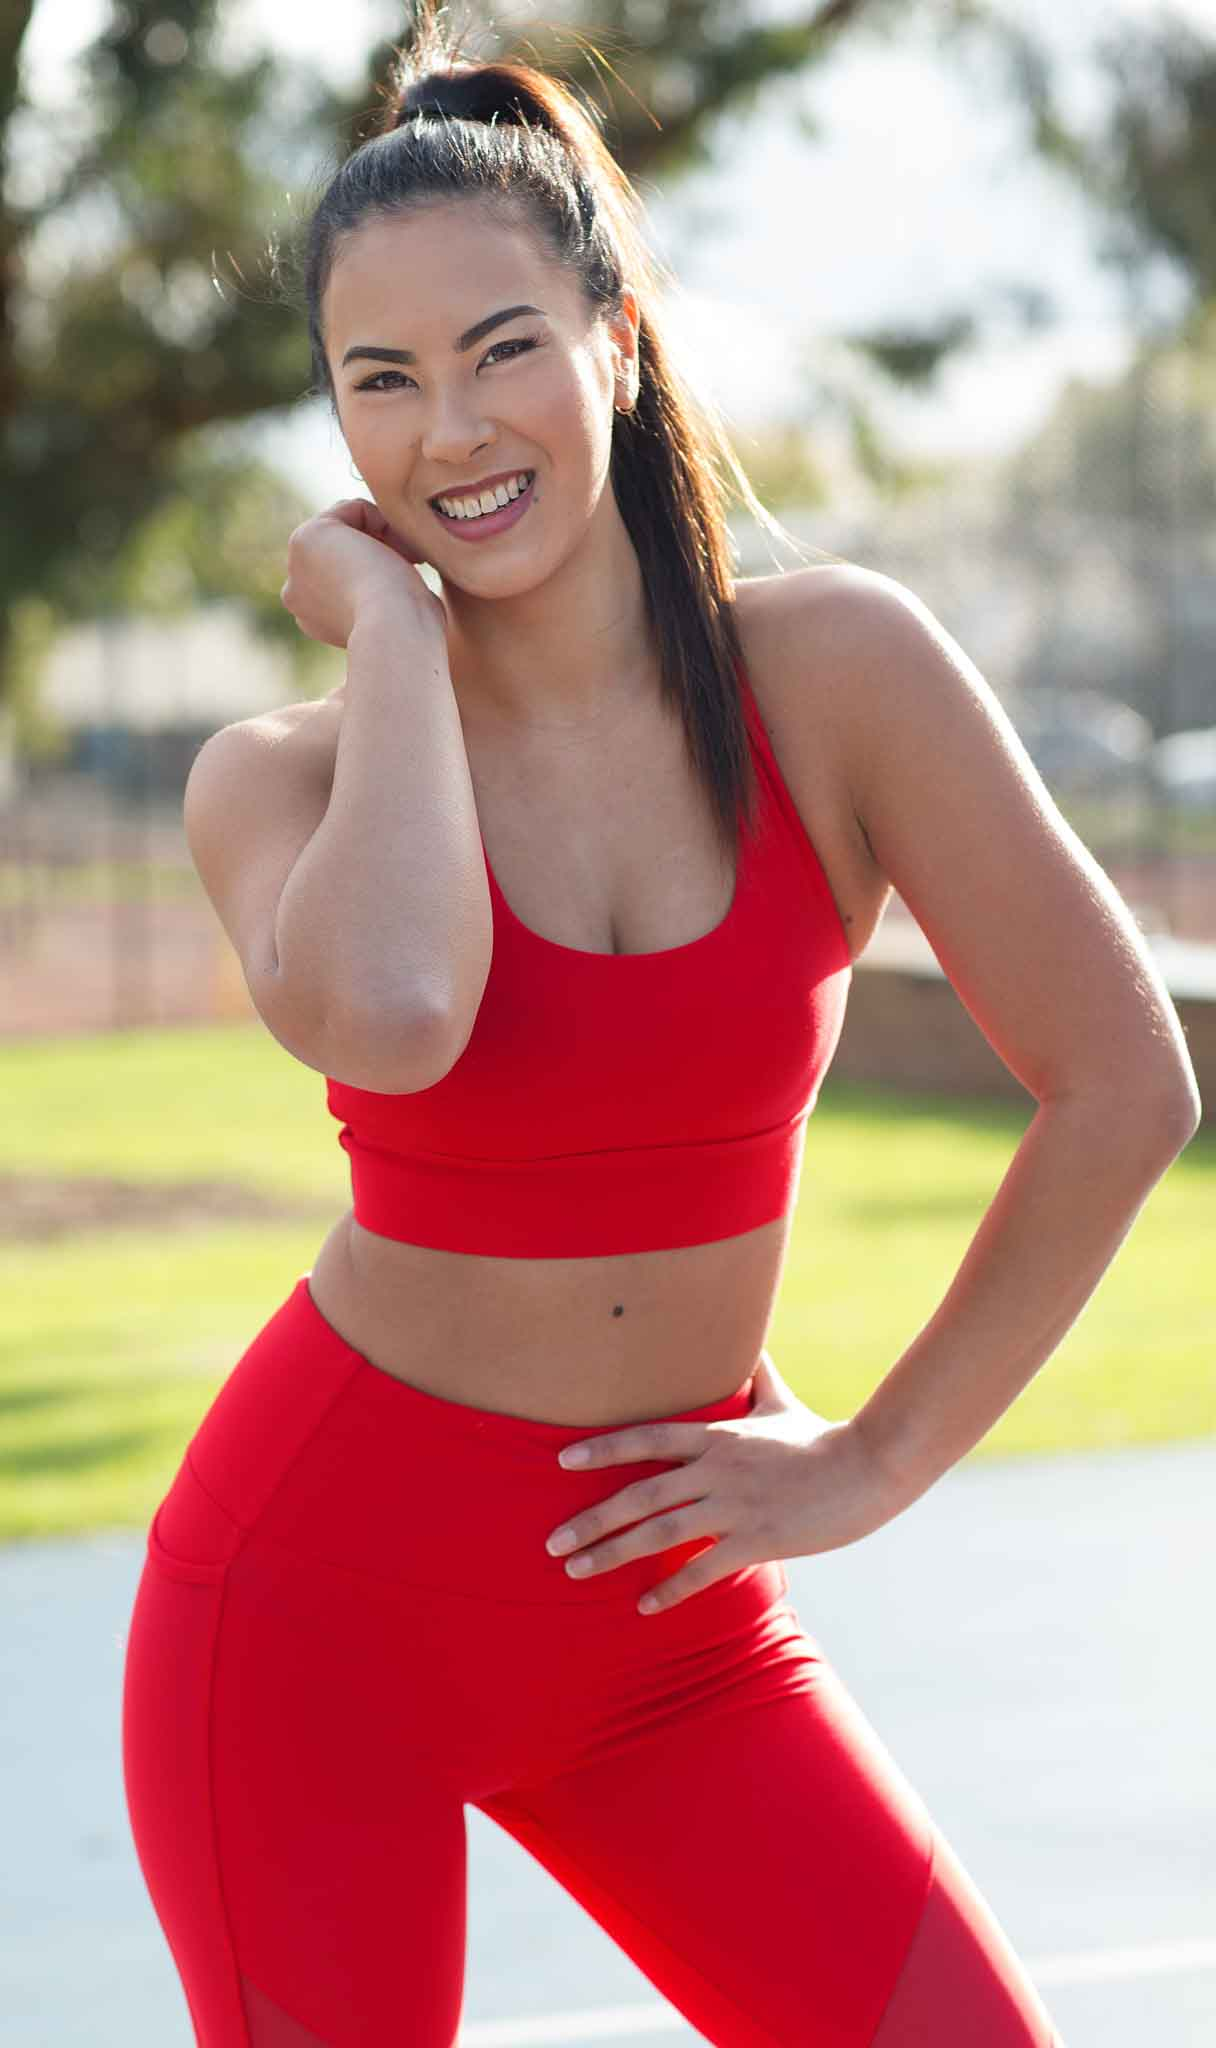 Gladysha Melbournes Asian Femail Fitness model featuring in Stop it I like it fitness shoot